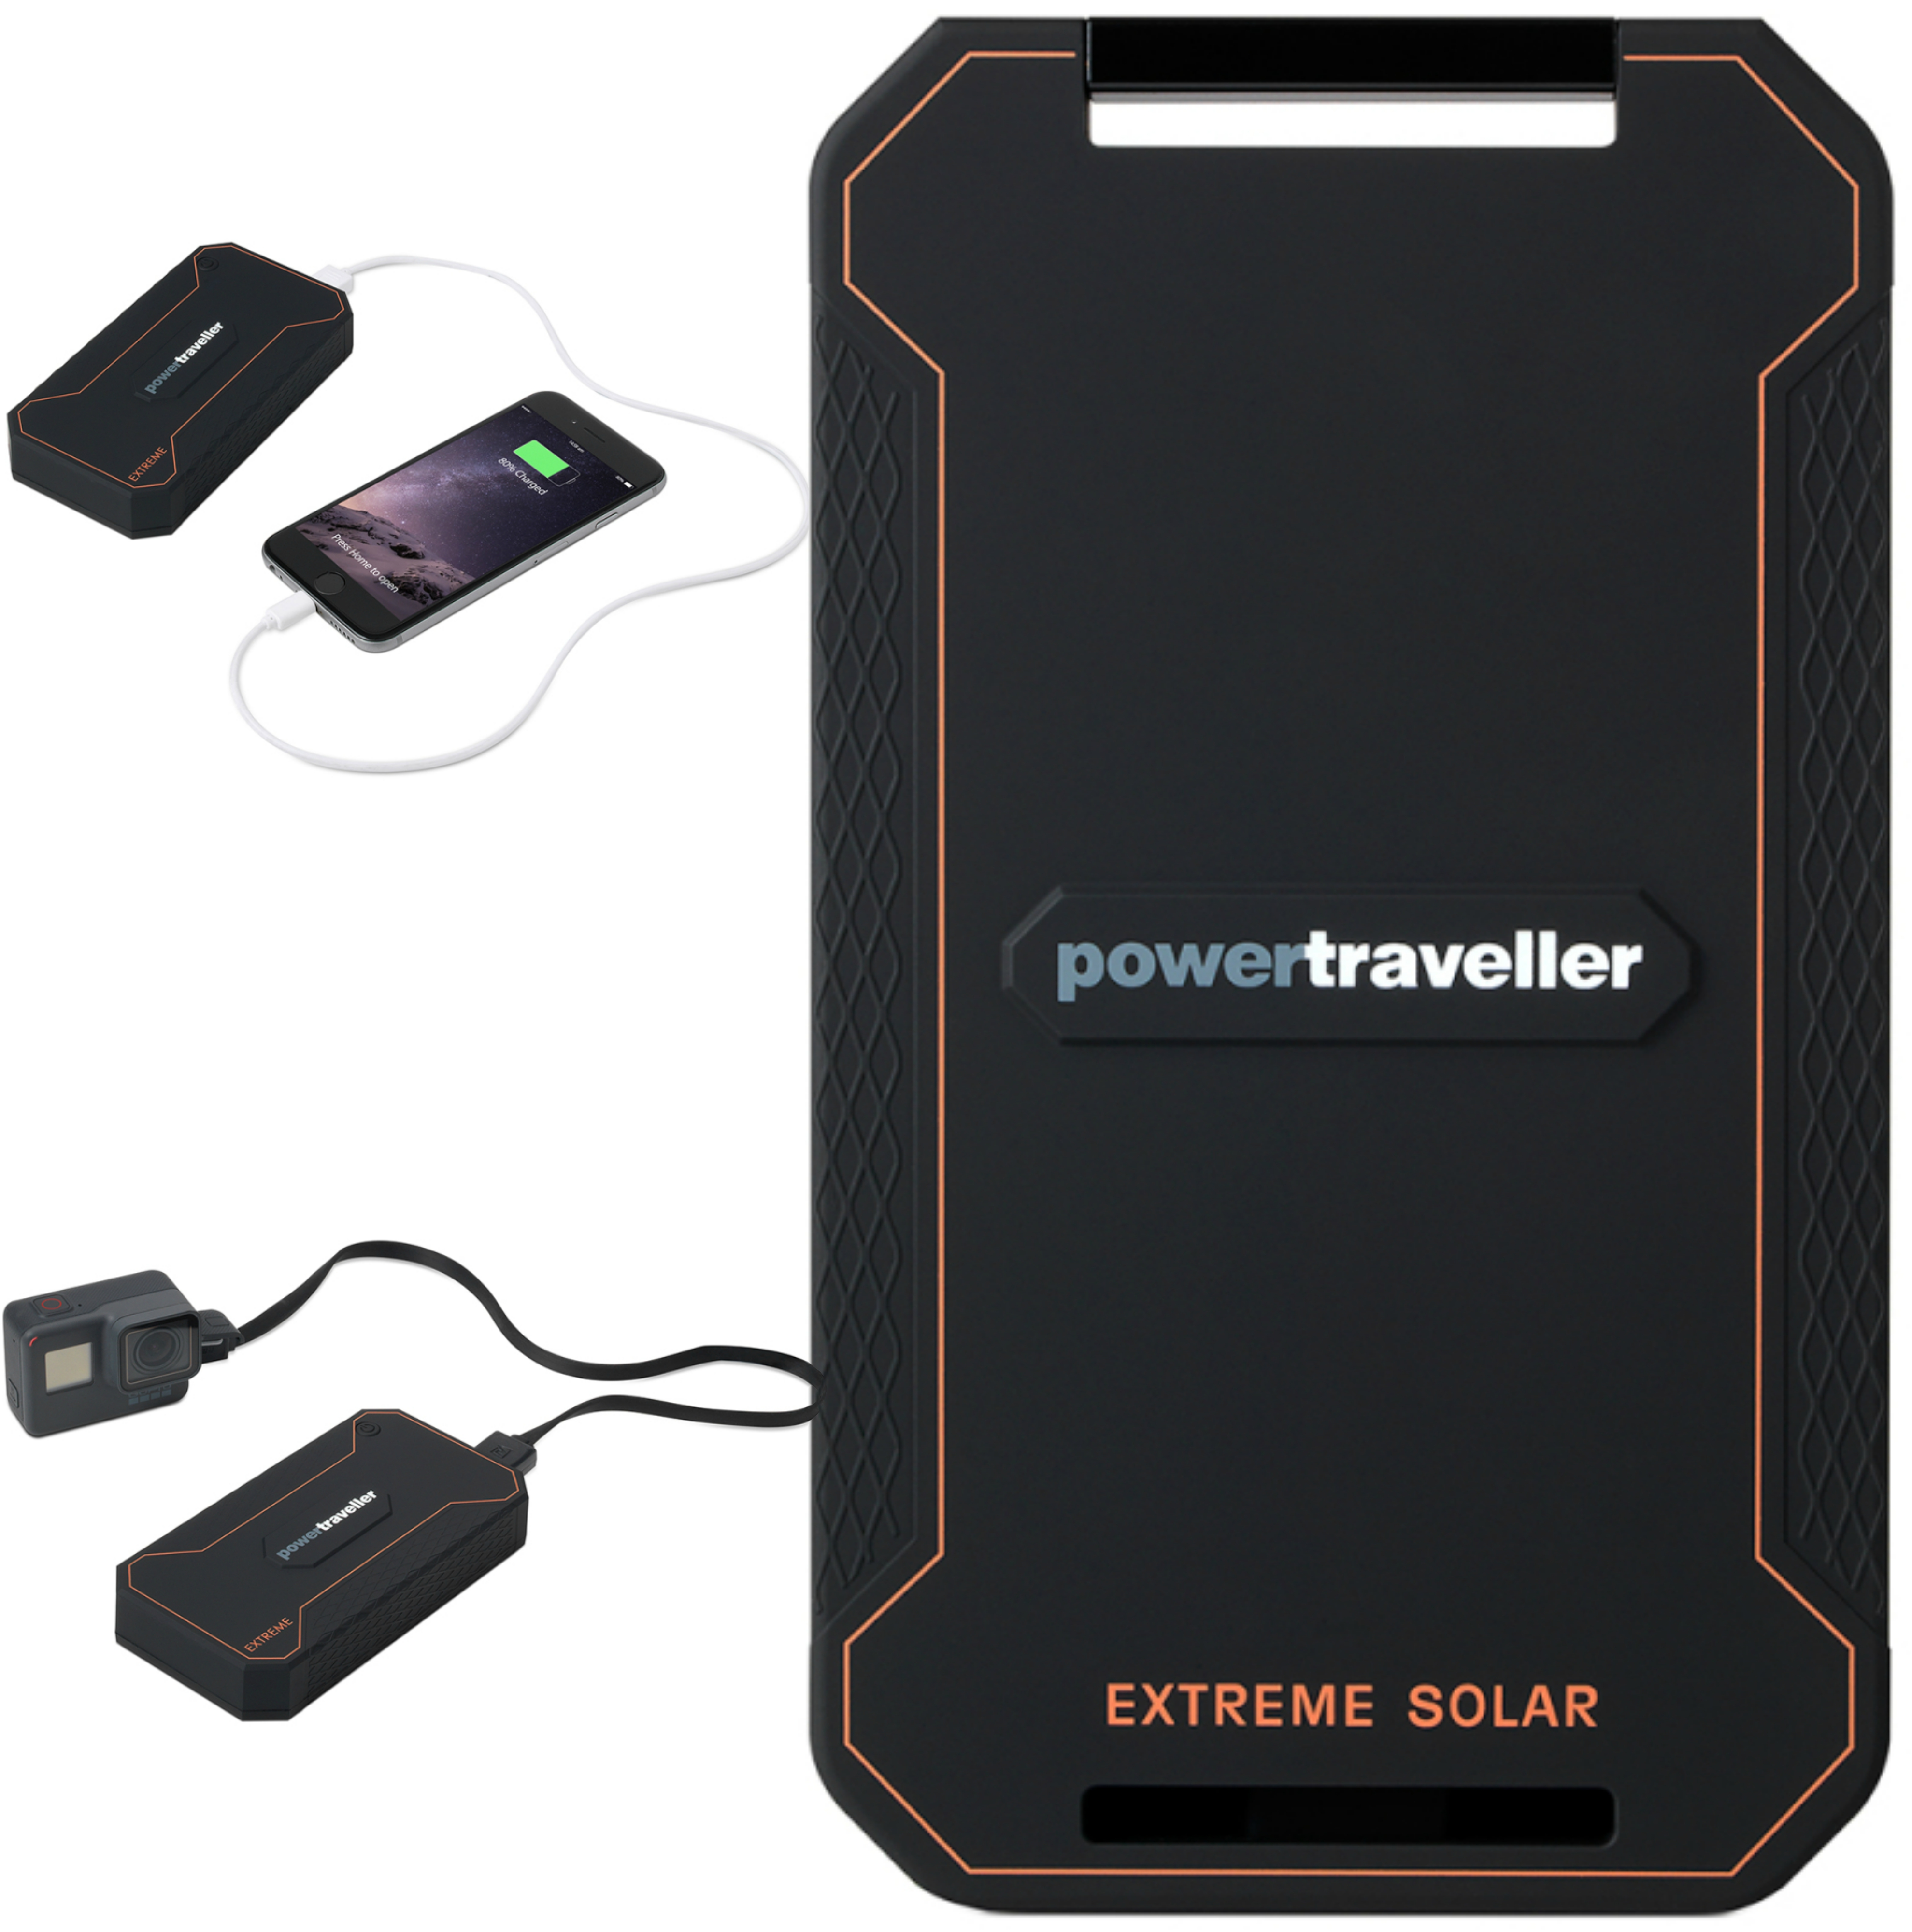 Powertraveller PTL-EXT001 Extreme Waterproof Rugged Charger?Solar Powered?NEW